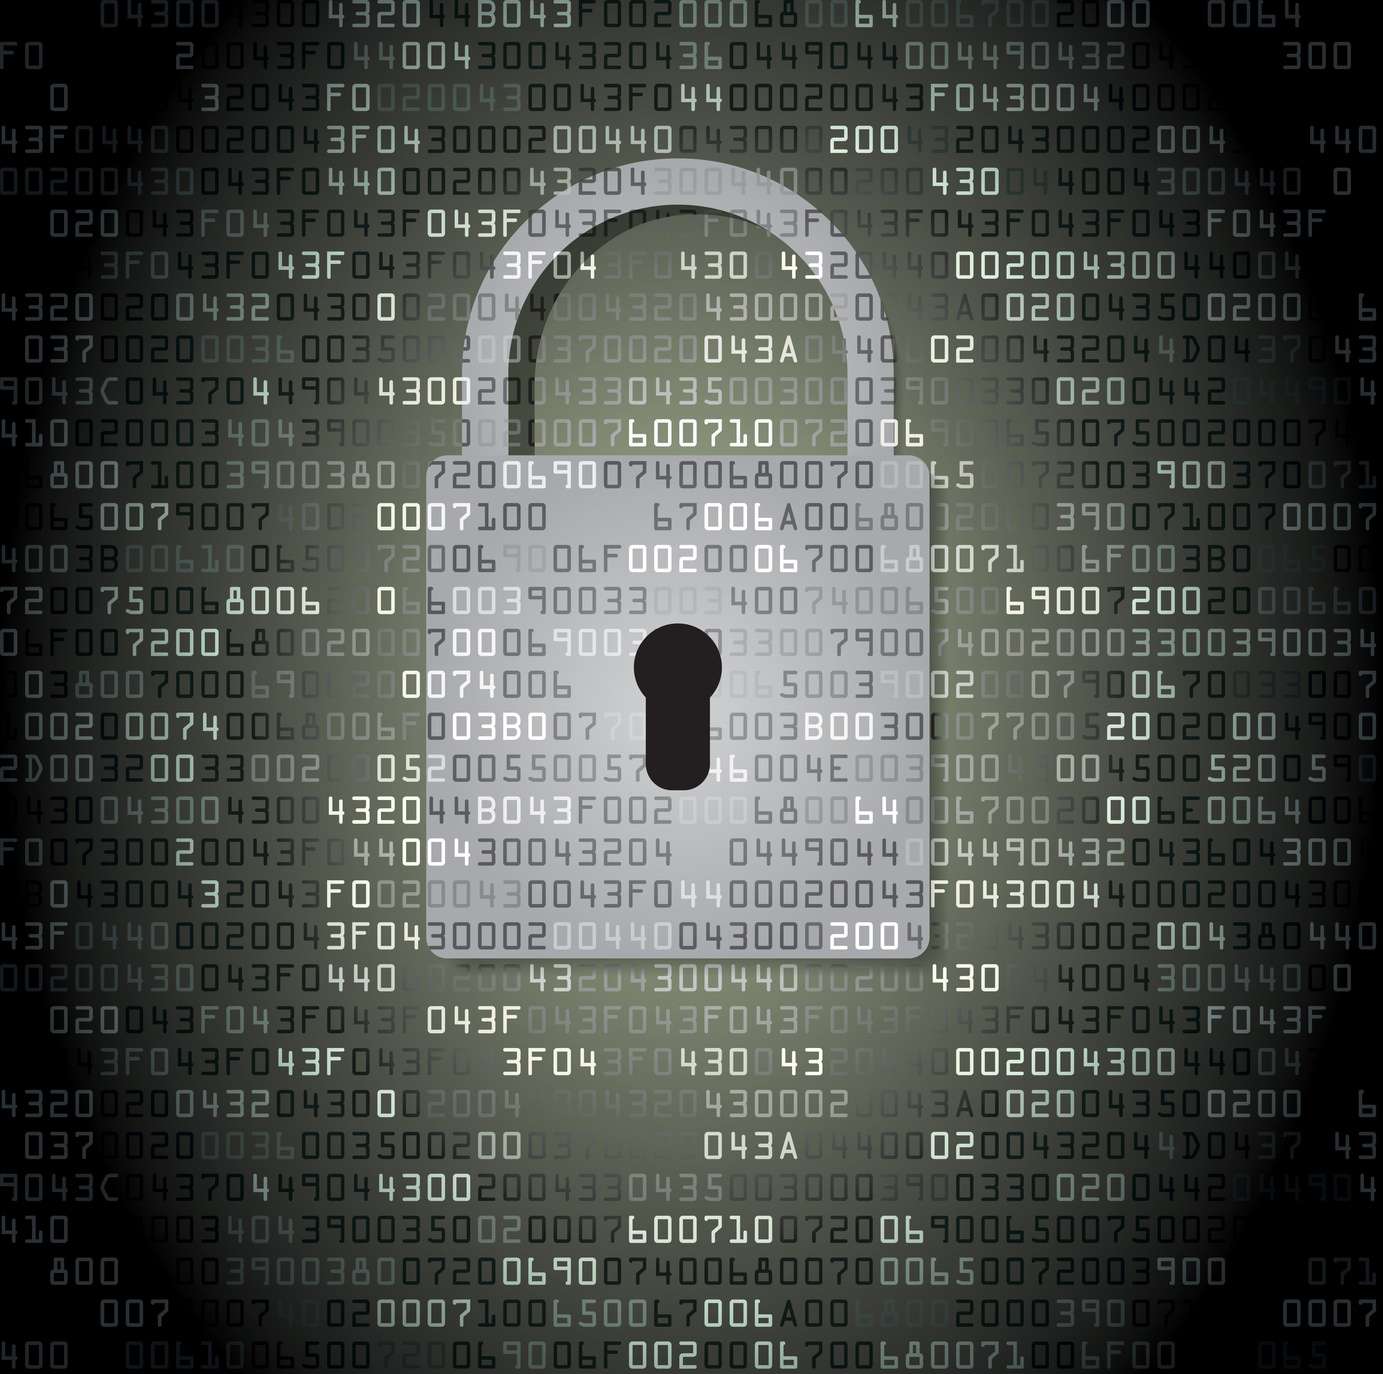 Fotolia_85860765_CyberSecurity_M